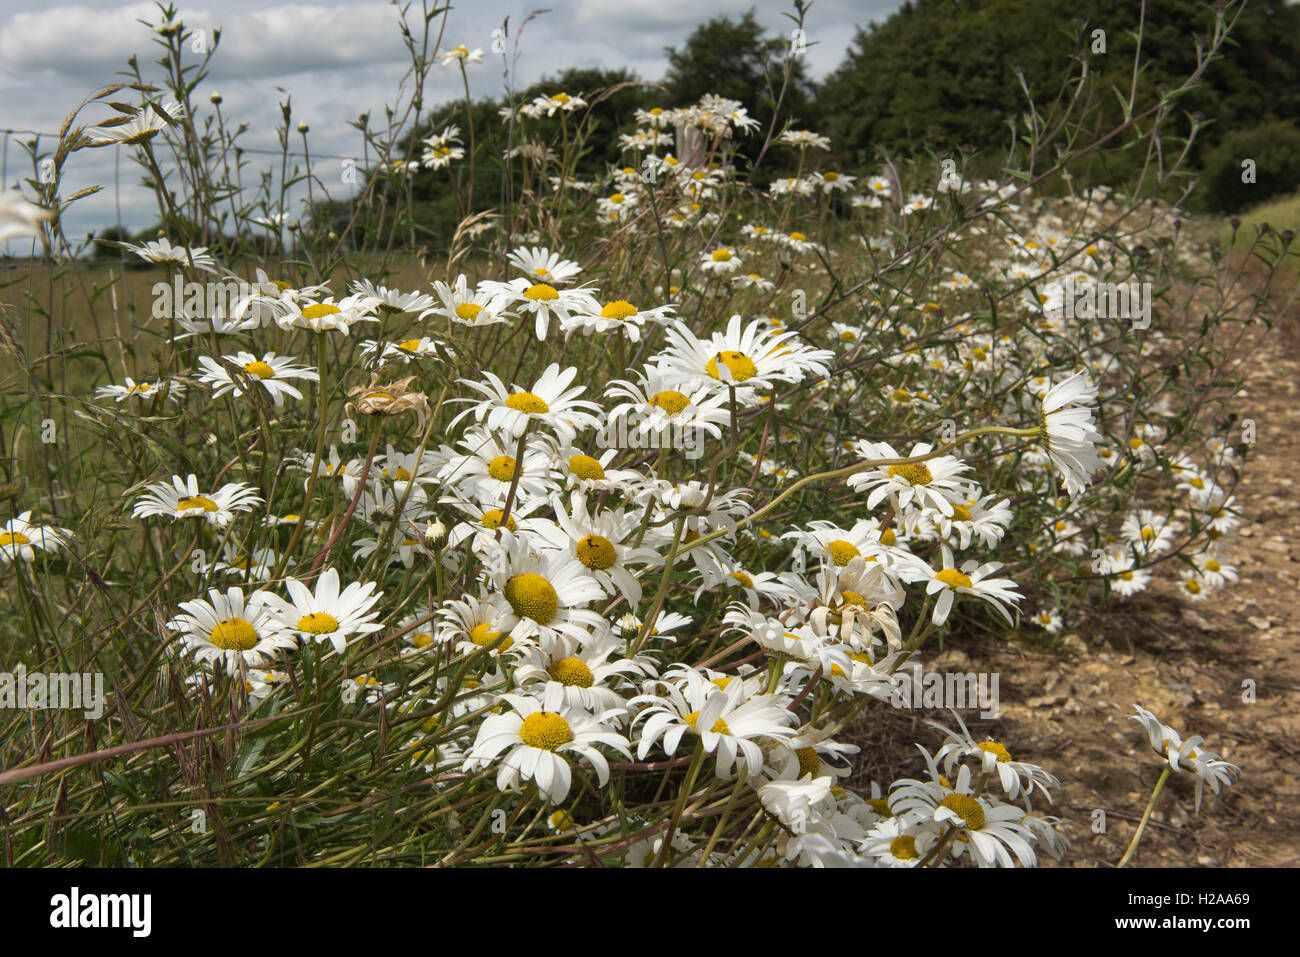 Ox-eye daisies, Leucanthemum vulgare, flowering along a fence, Berkshire, July Stock Photo